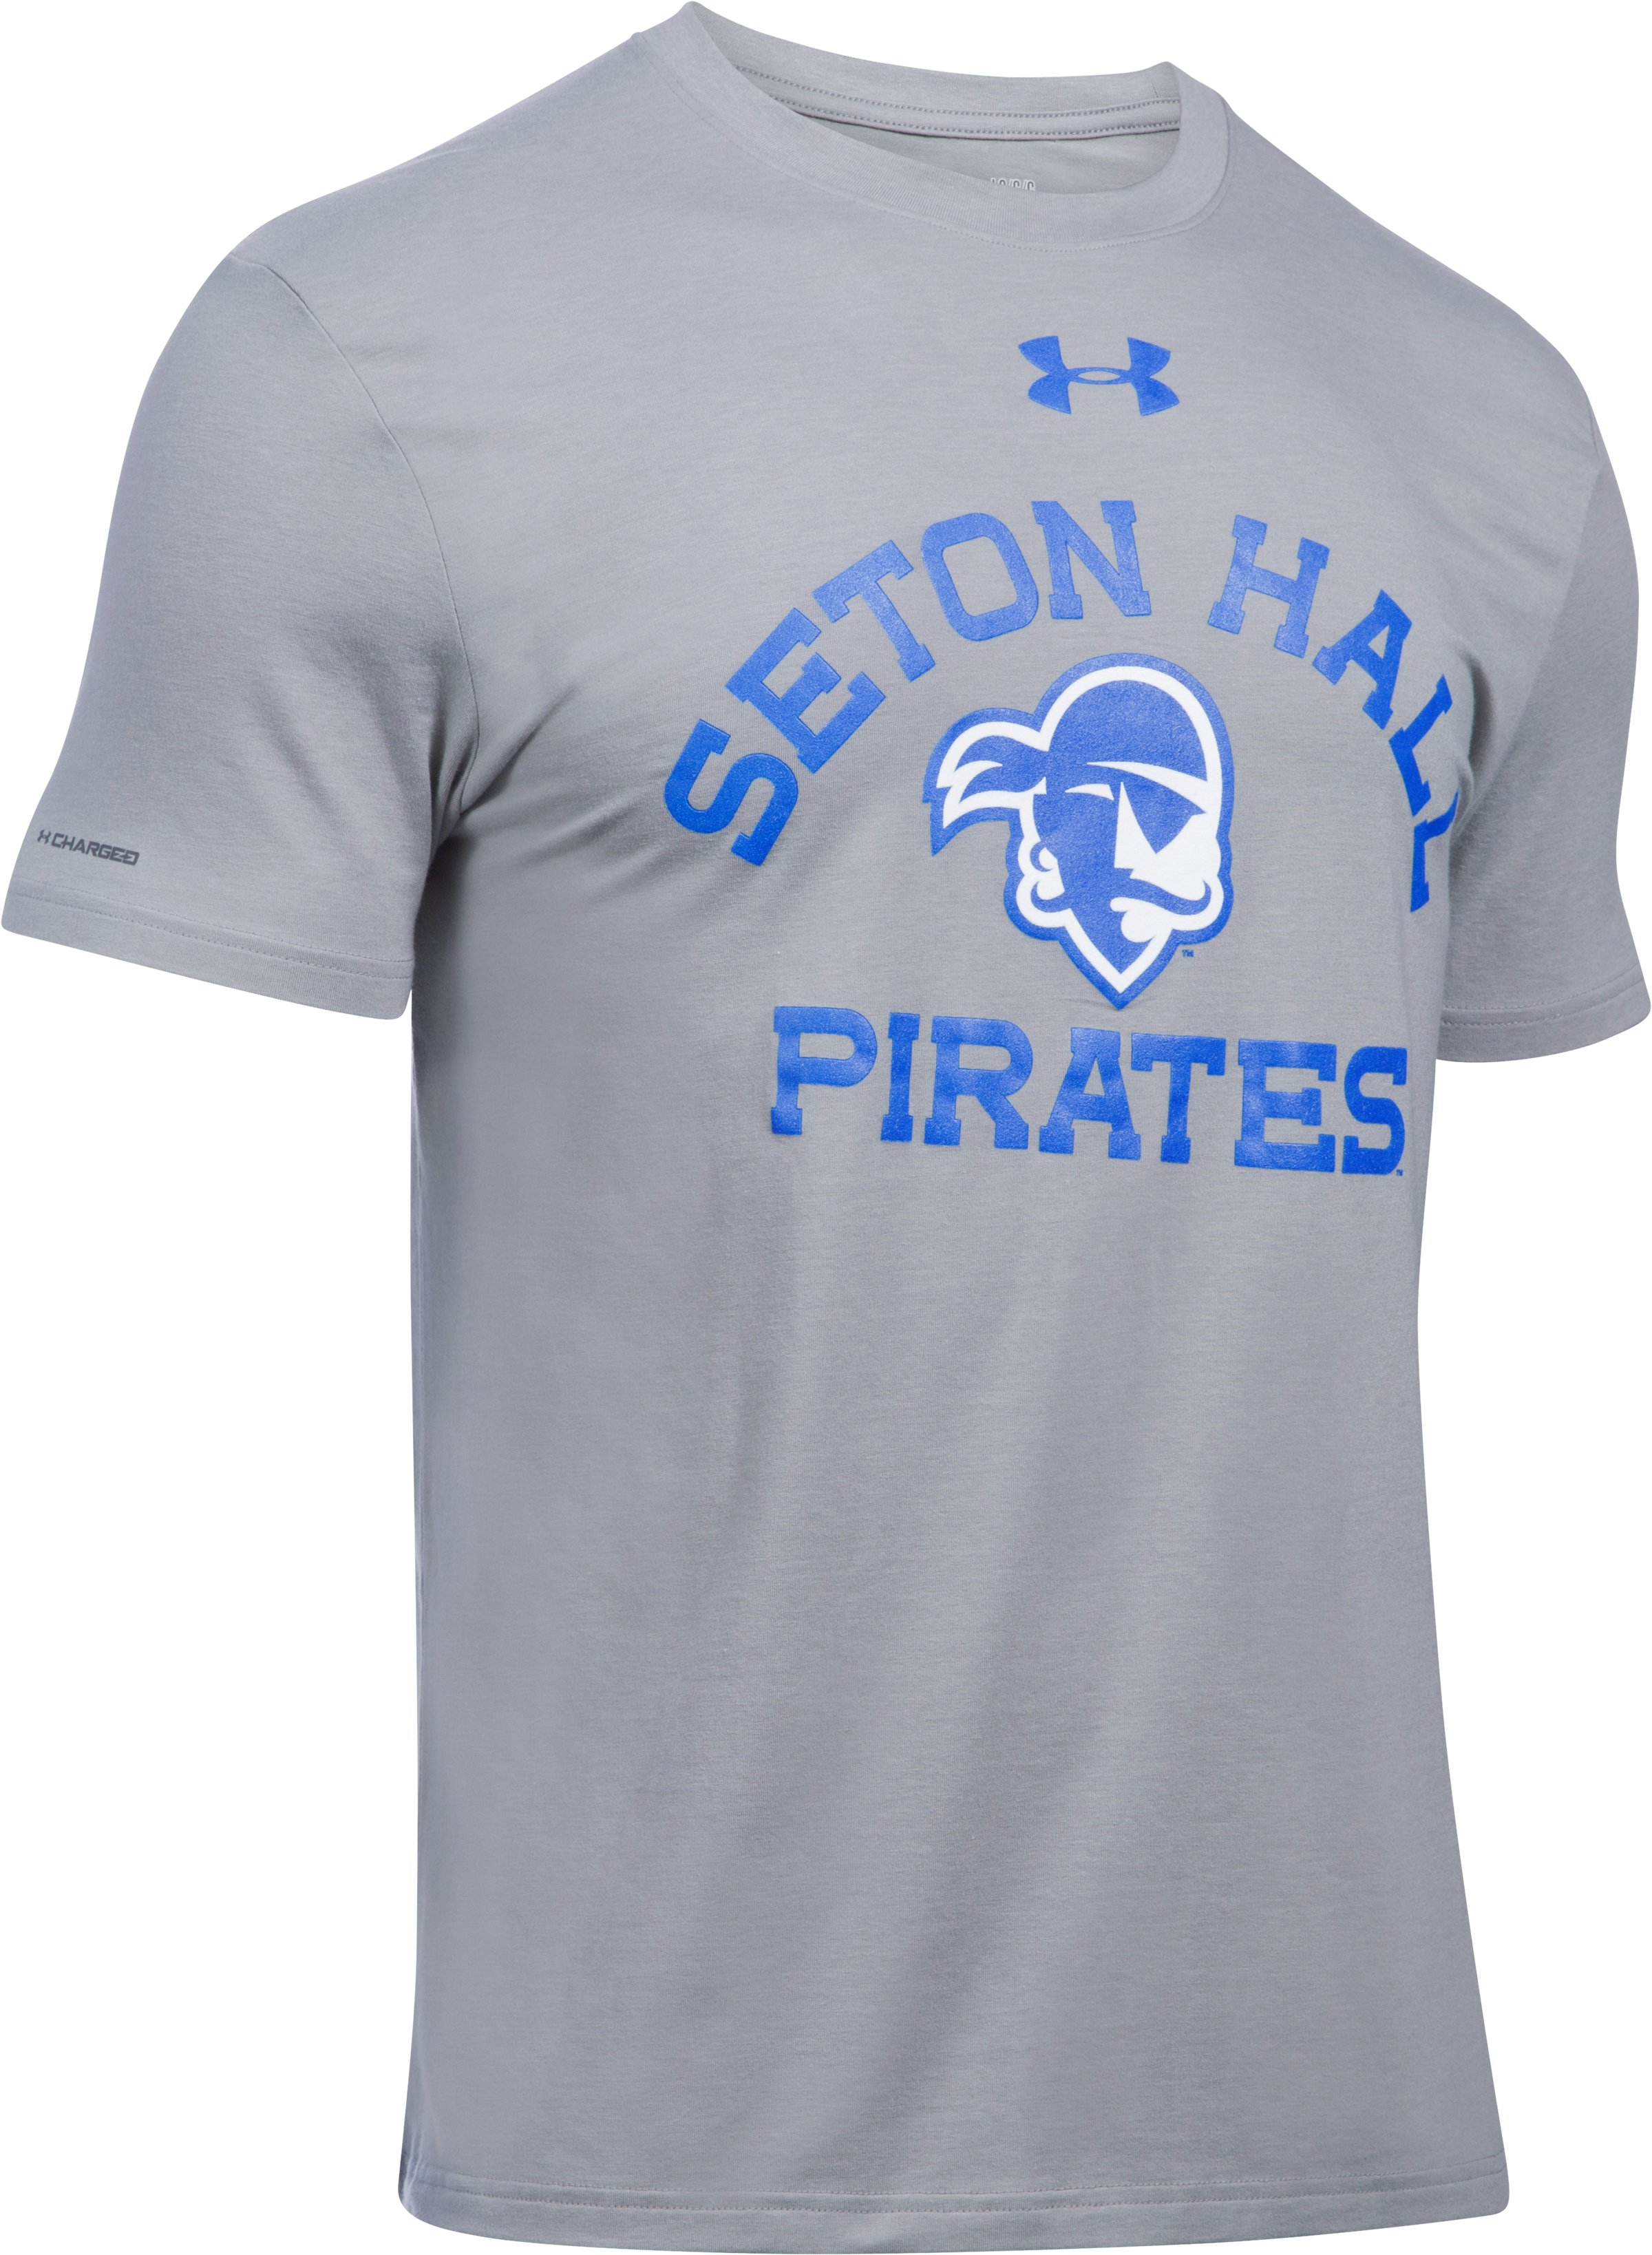 Men's Seton Hall Charged Cotton® T-Shirt, True Gray Heather,